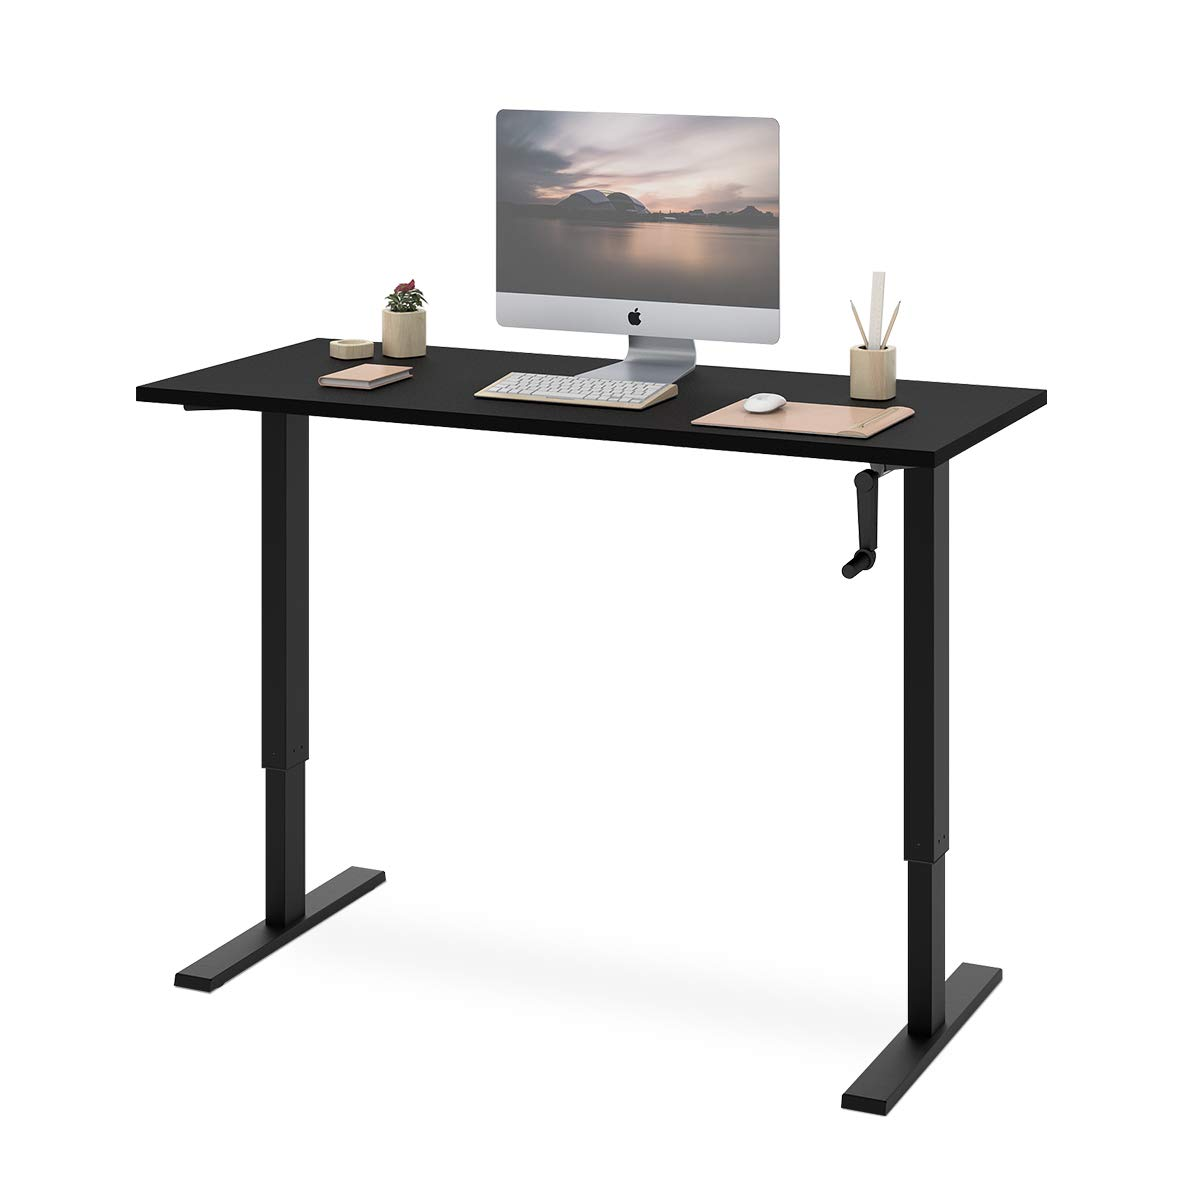 DEVAISE Standing Desk - 55'' Adjustable Sit to Stand Up Desk with Crank Handle, Black